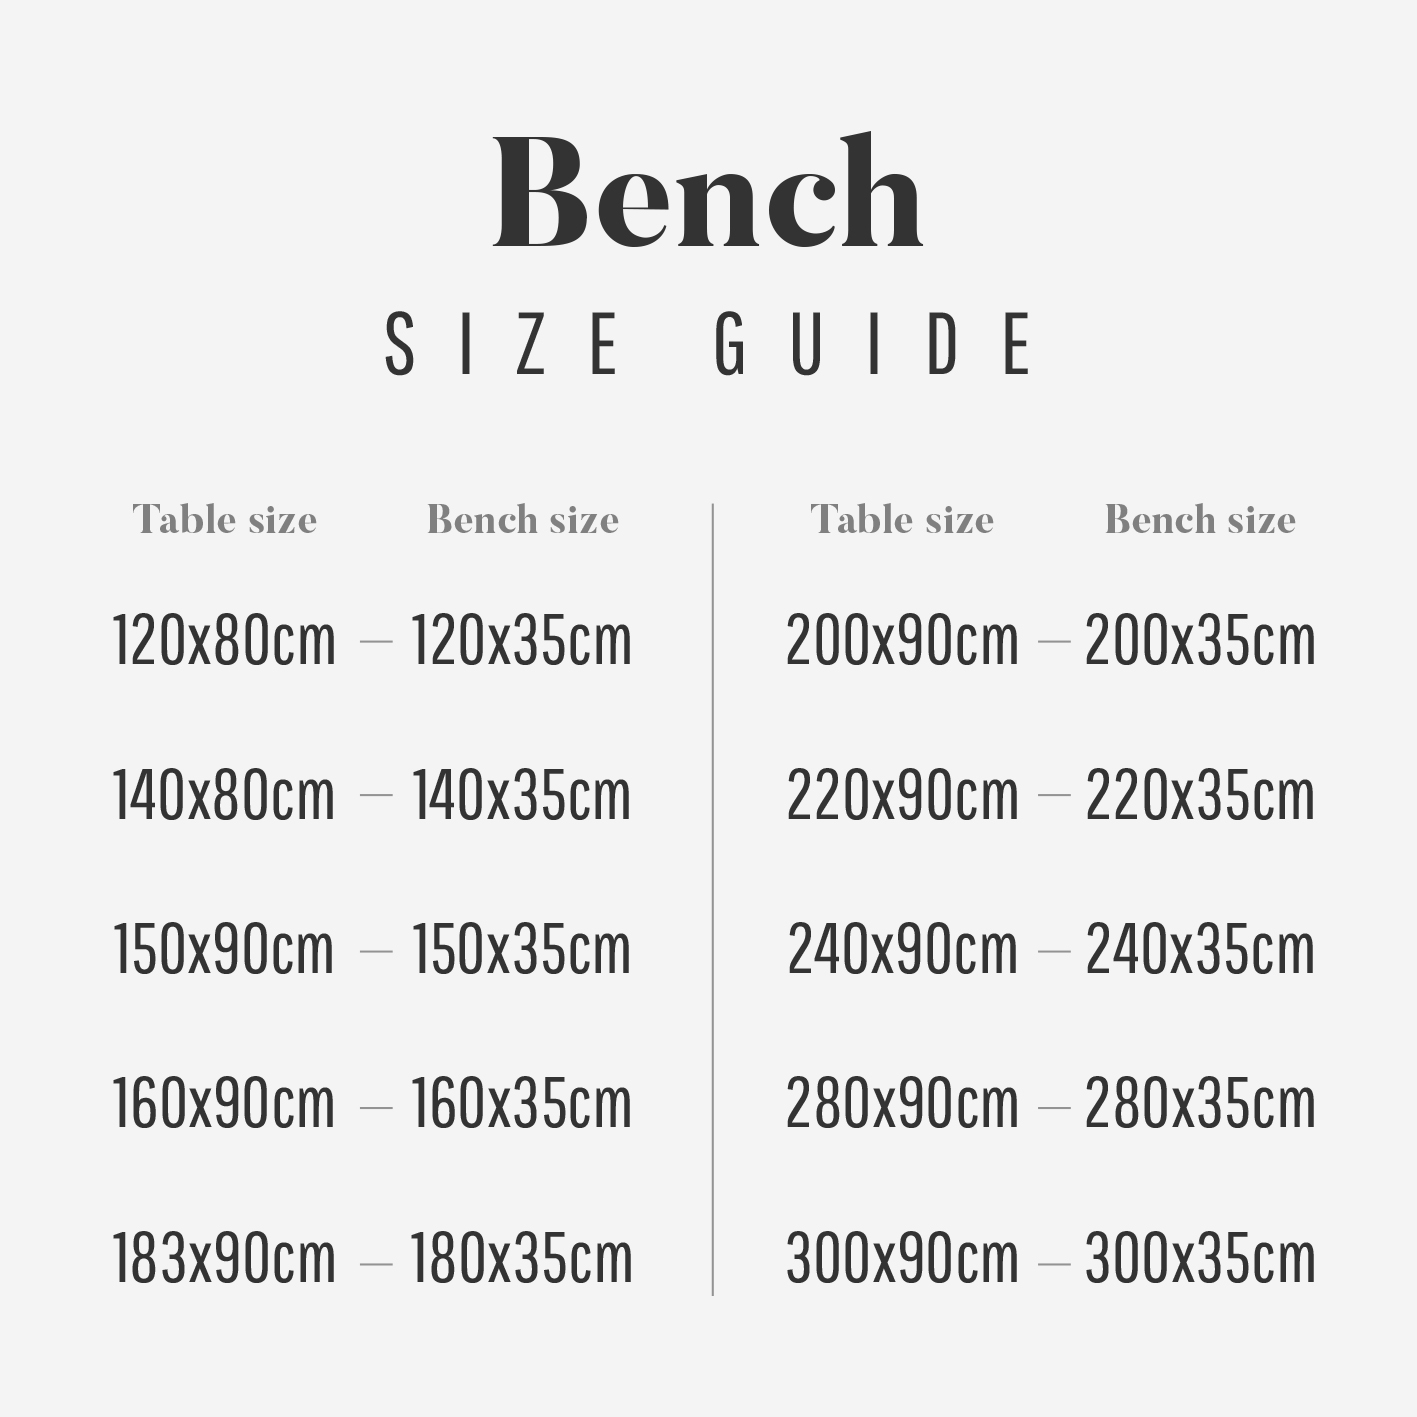 Bench Size Guide Full-Length